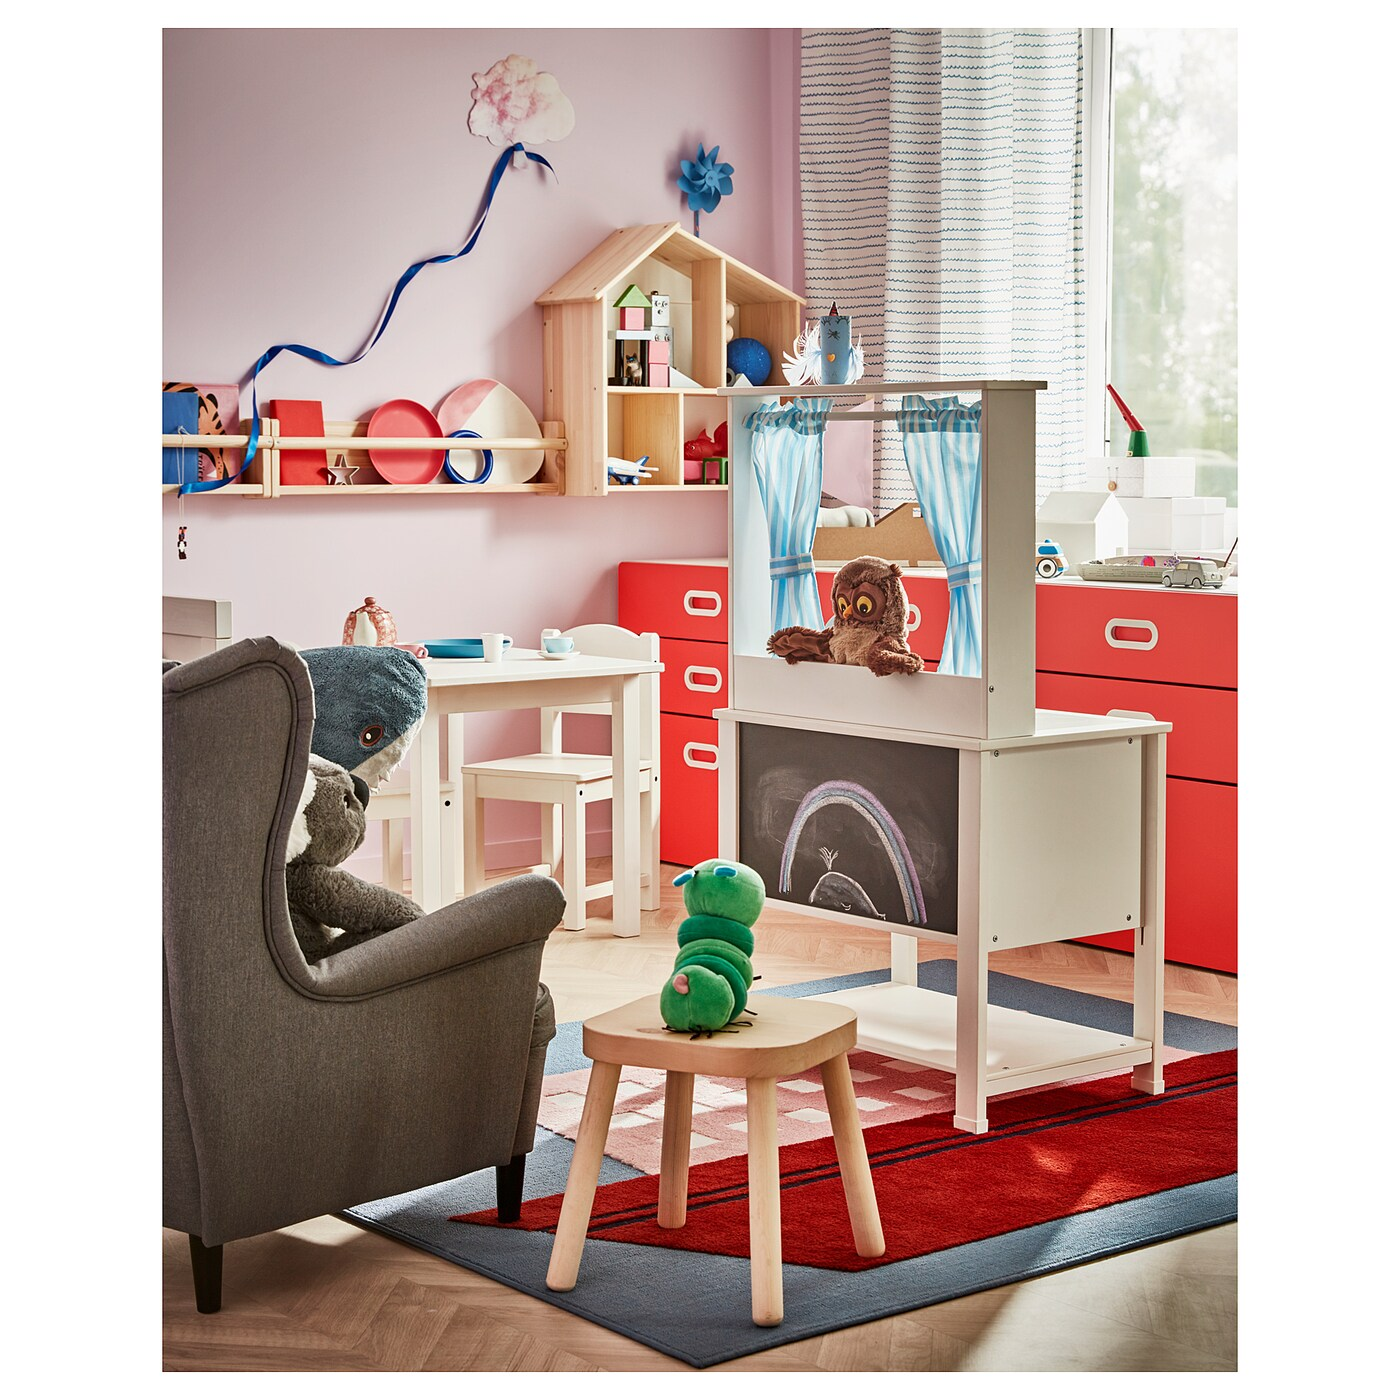 Spisig Play Kitchen With Curtains 21 5 8x14 5 8x38 5 8 Ikea